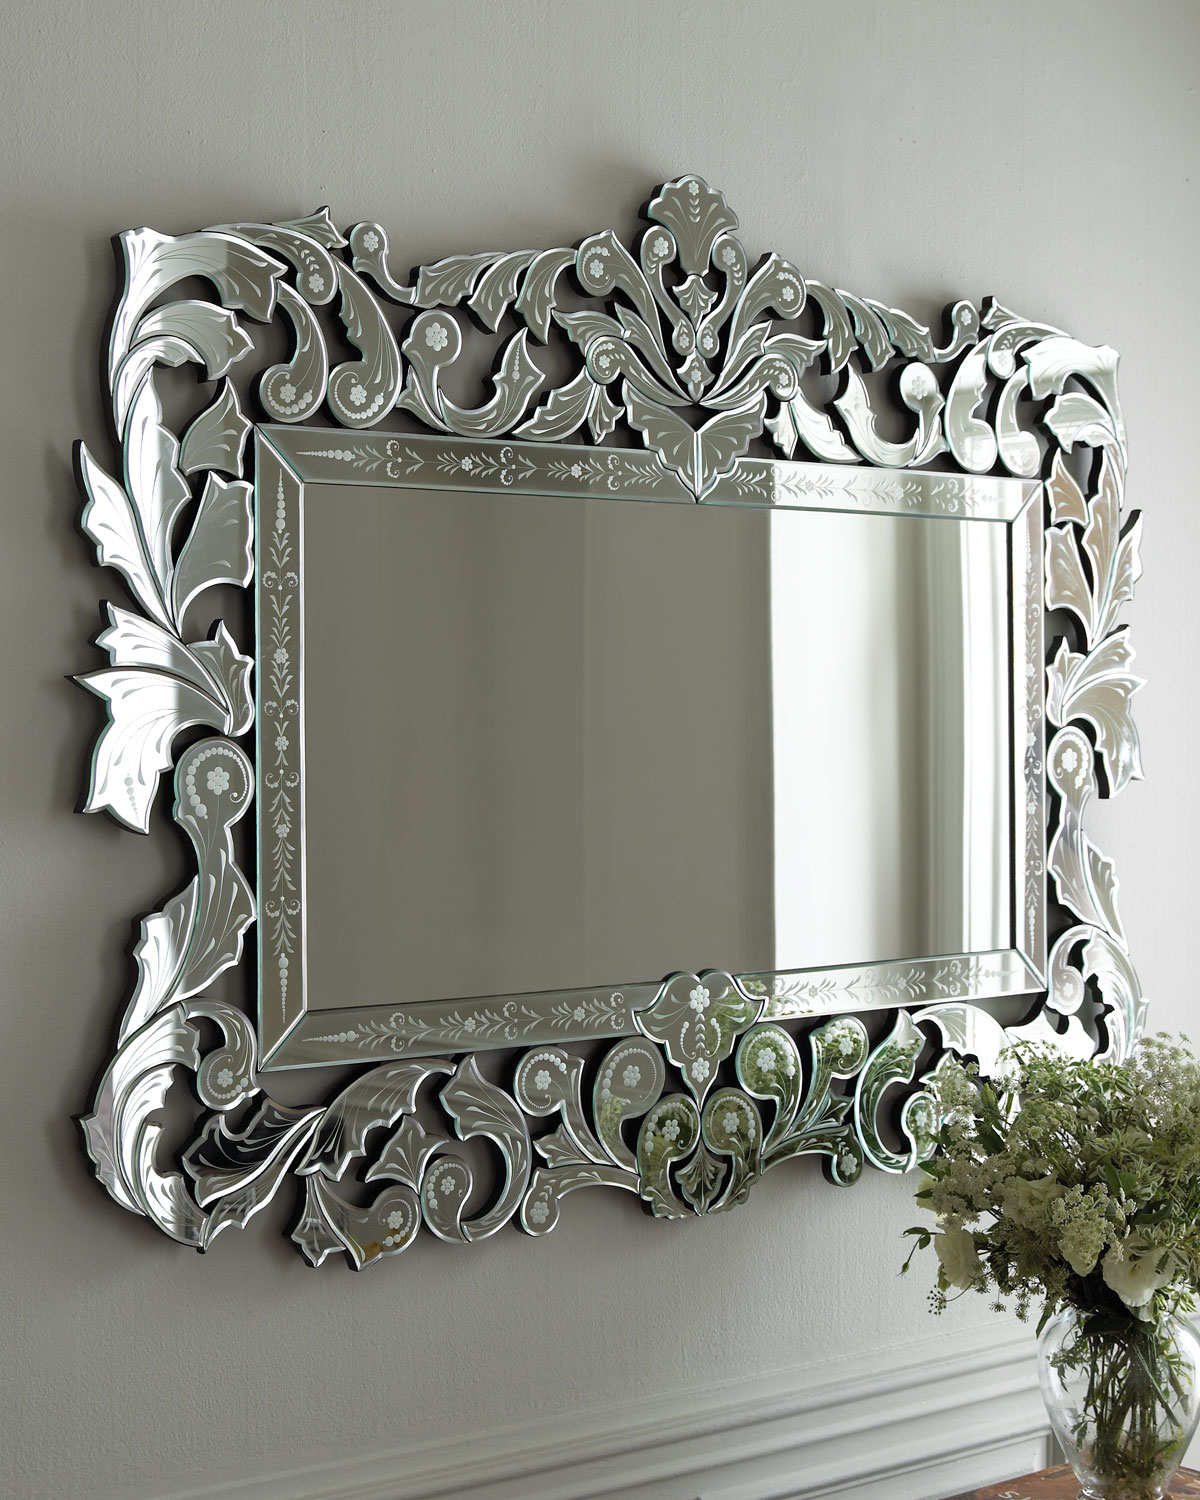 Giorgia venetian style mirror from horchow epic wishlist - Fancy wall designs ...